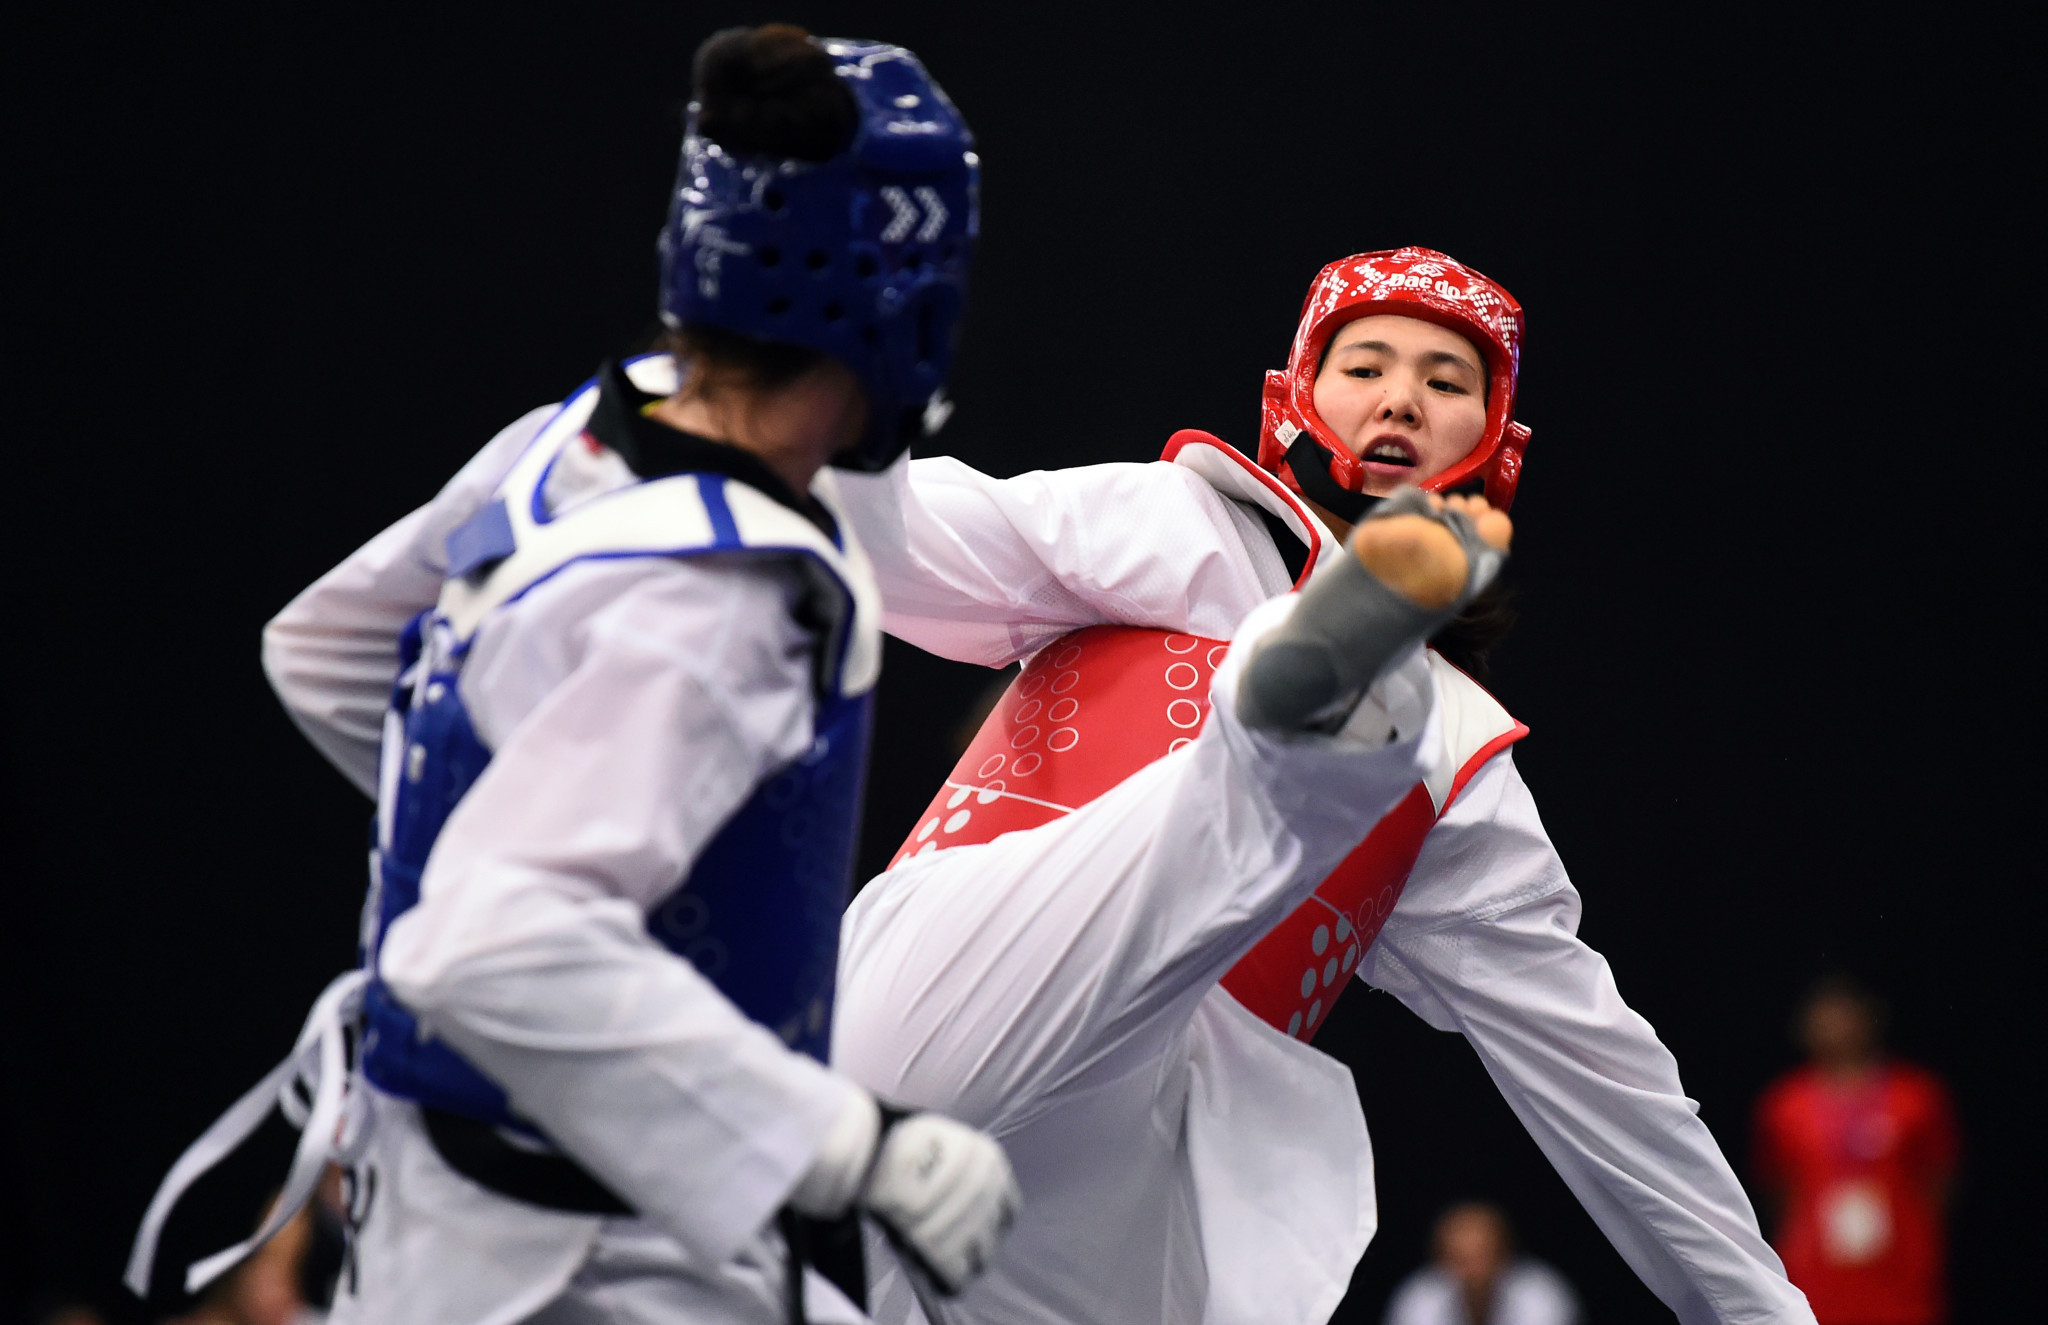 Olympic champion Shuyin Zheng had been dominating the women's over-73kg final against Bianca Walkden ©Getty Images